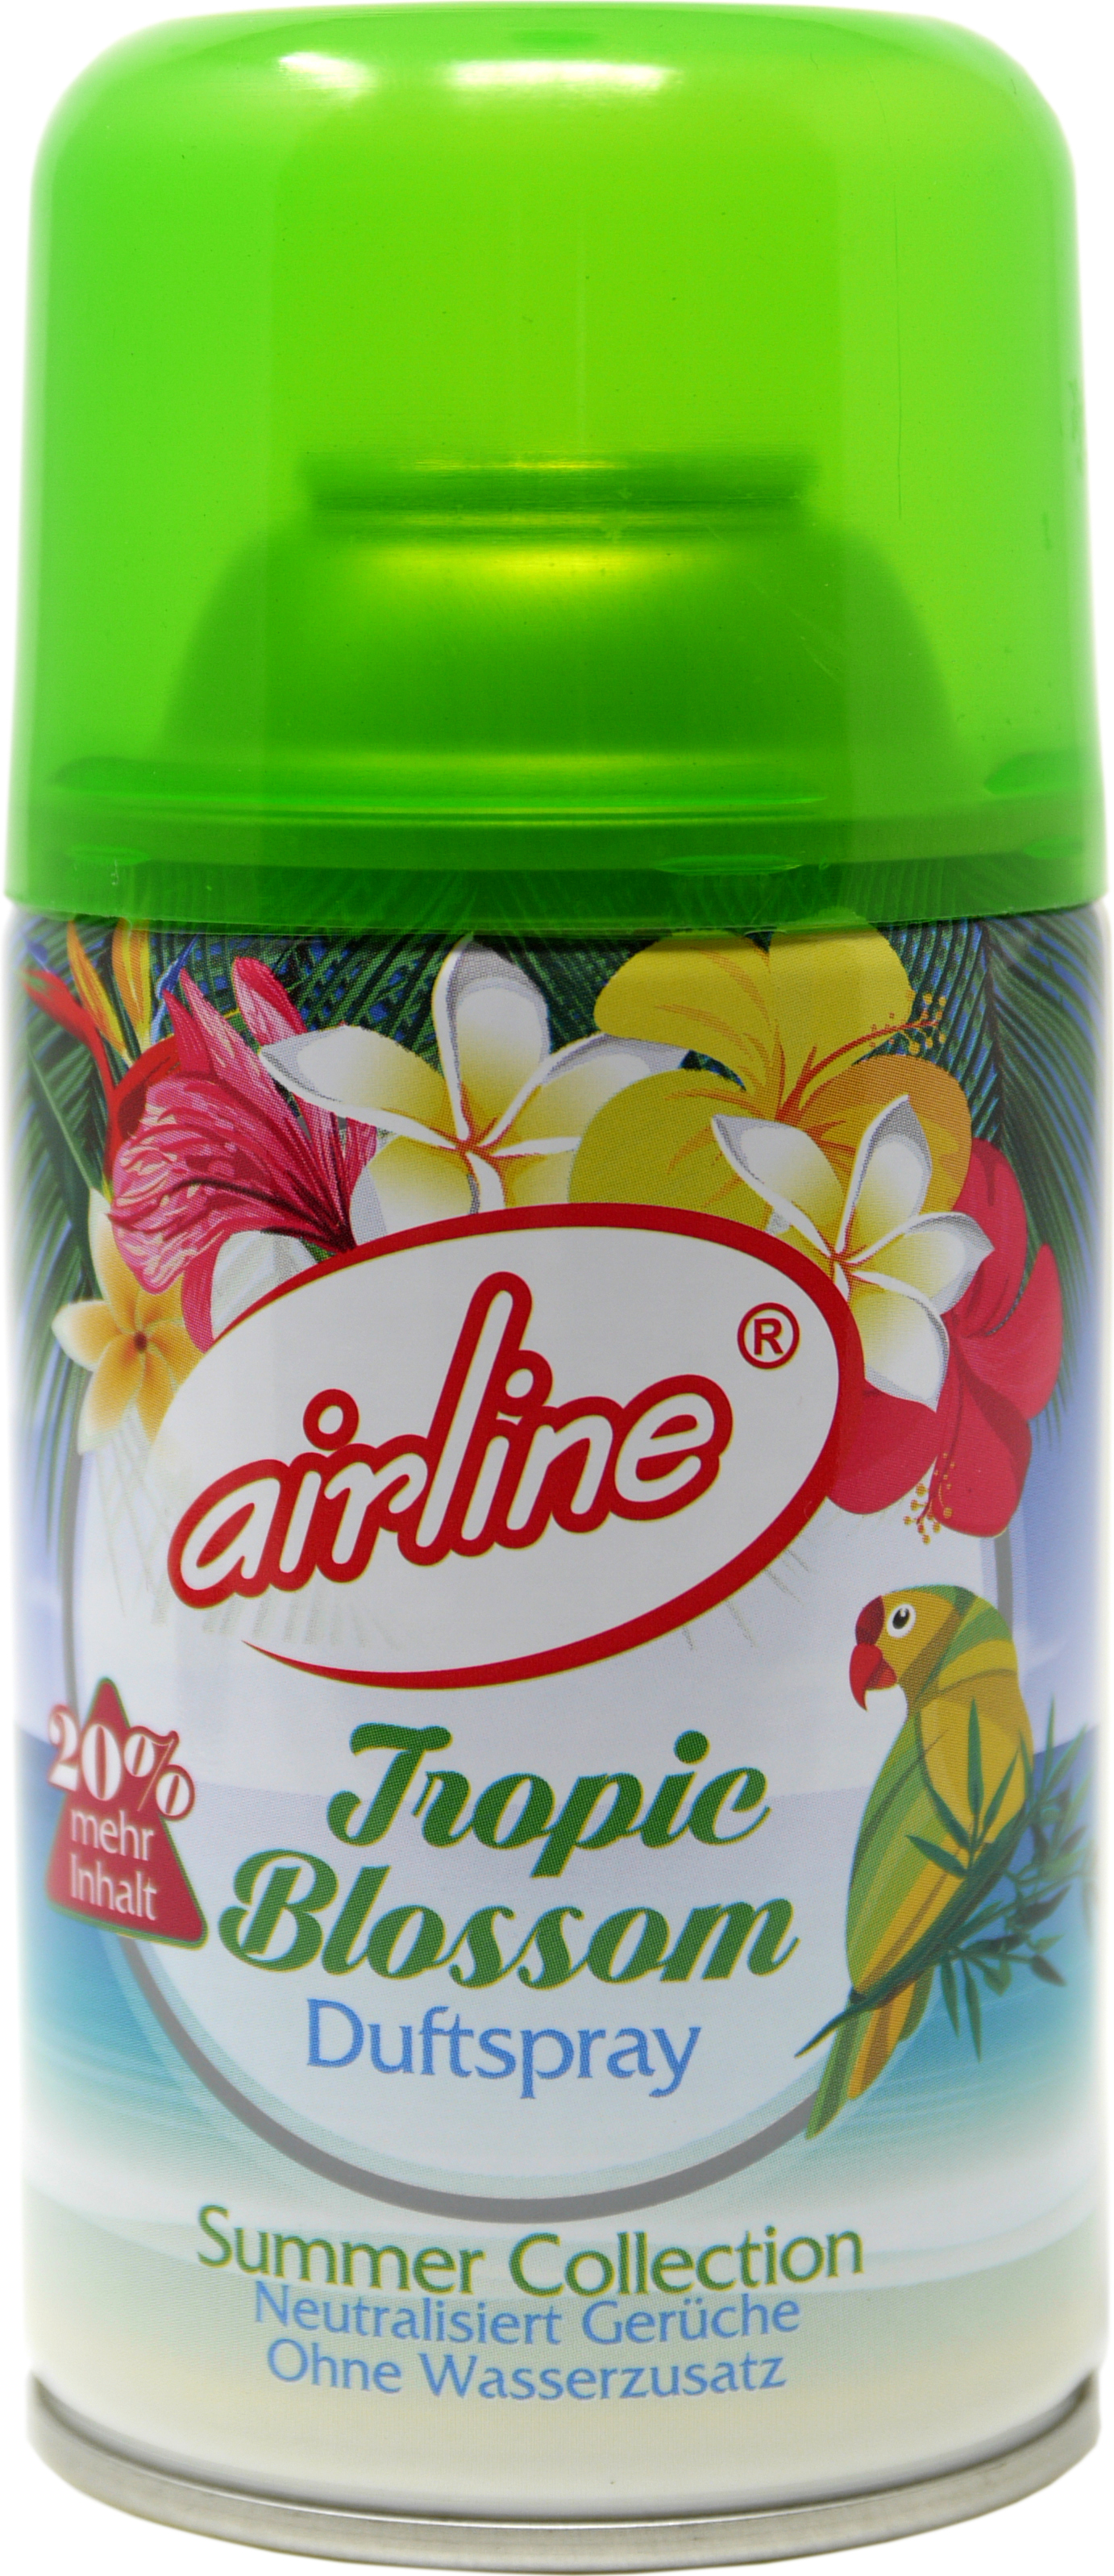 00531 - summer collection 300 ml - tropic blossom